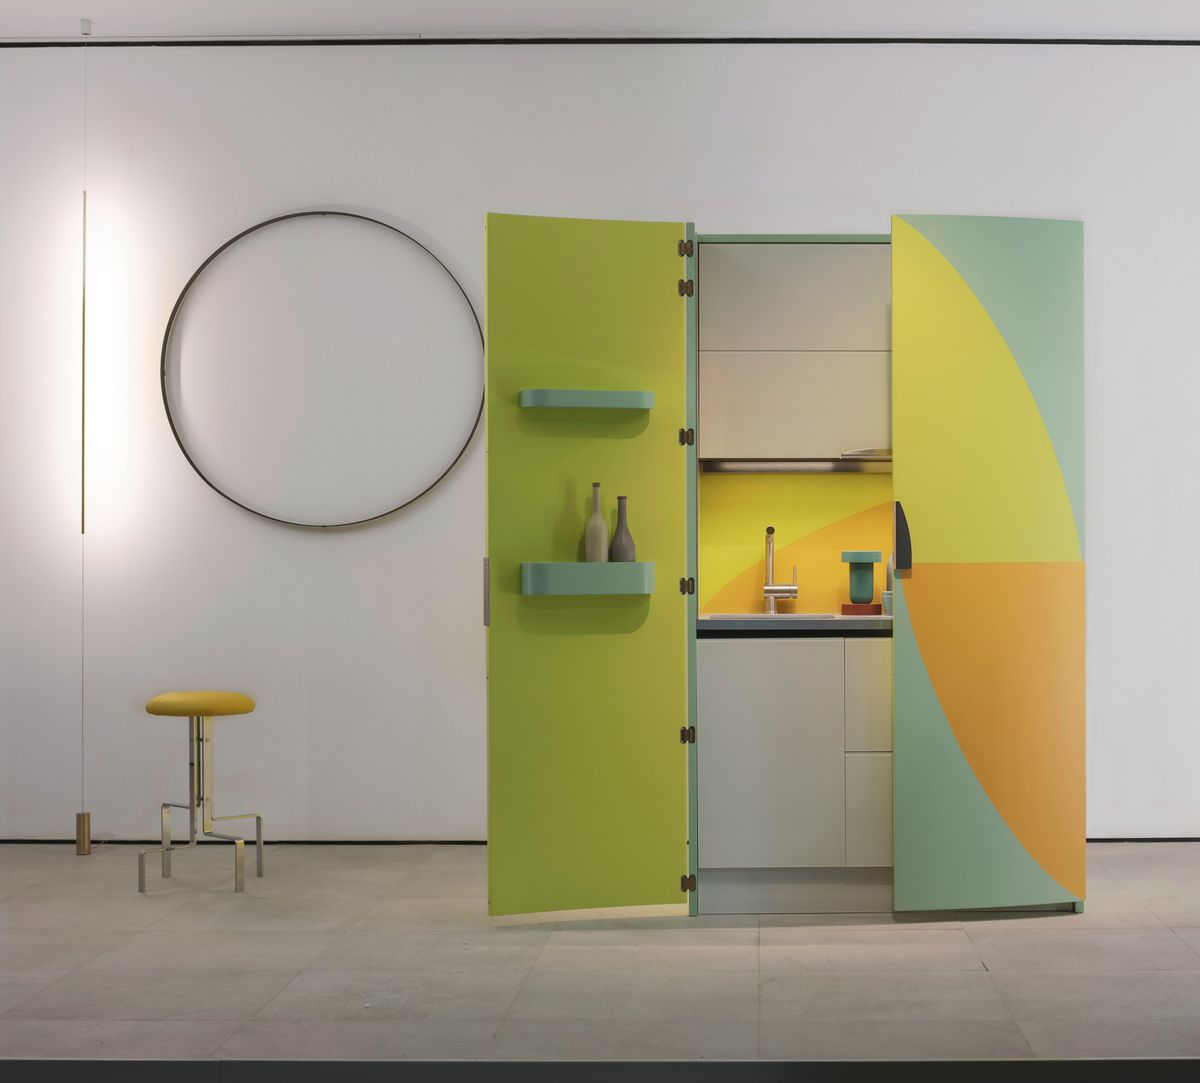 Colorful micro kitchen with one door open